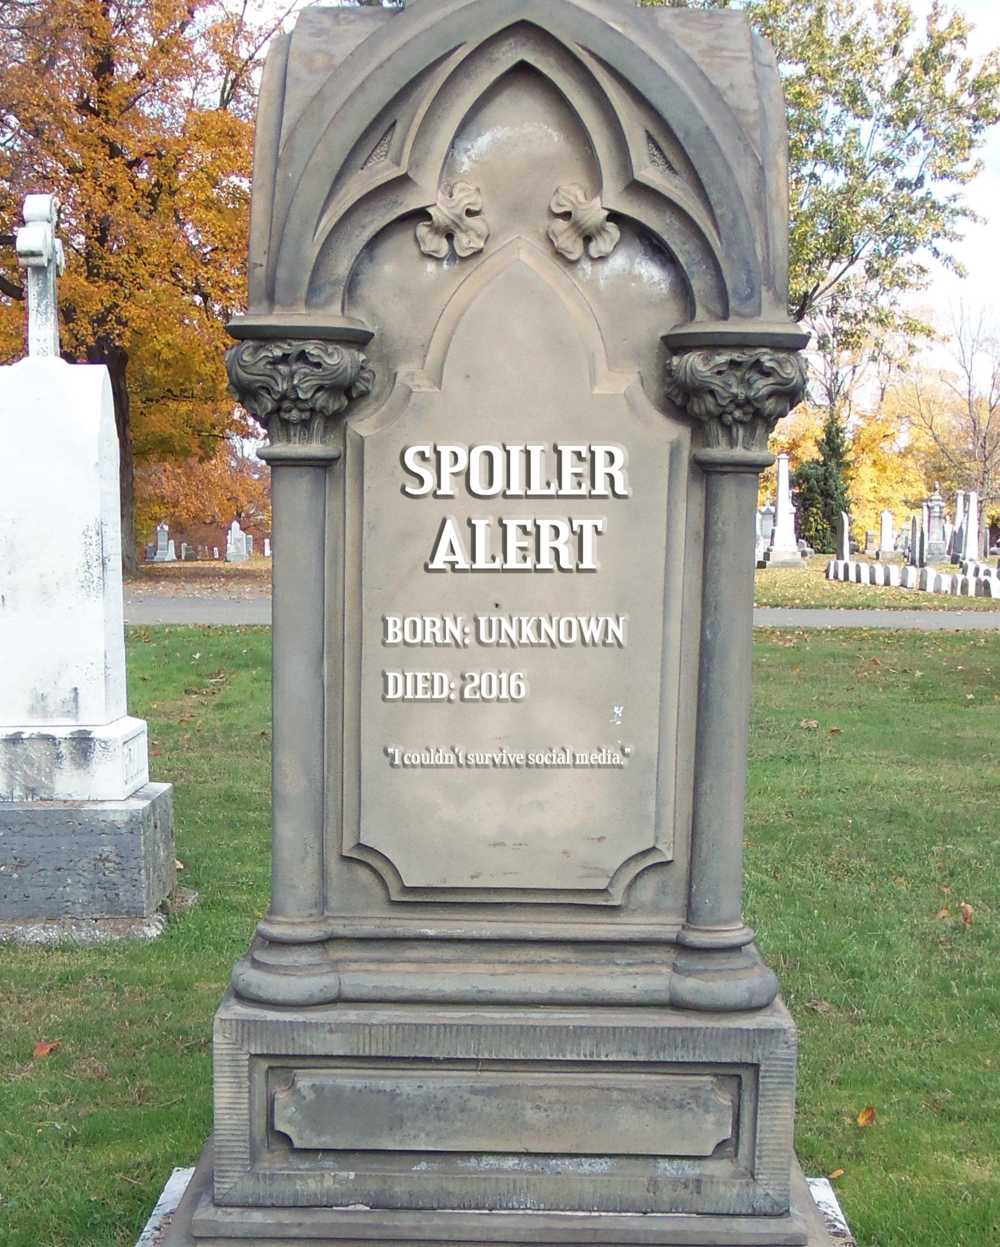 Here lies the Spoiler Alert, killed maliciously in the line of duty by social media, general impatience and a need to talk about any and everything we see. Yikes.